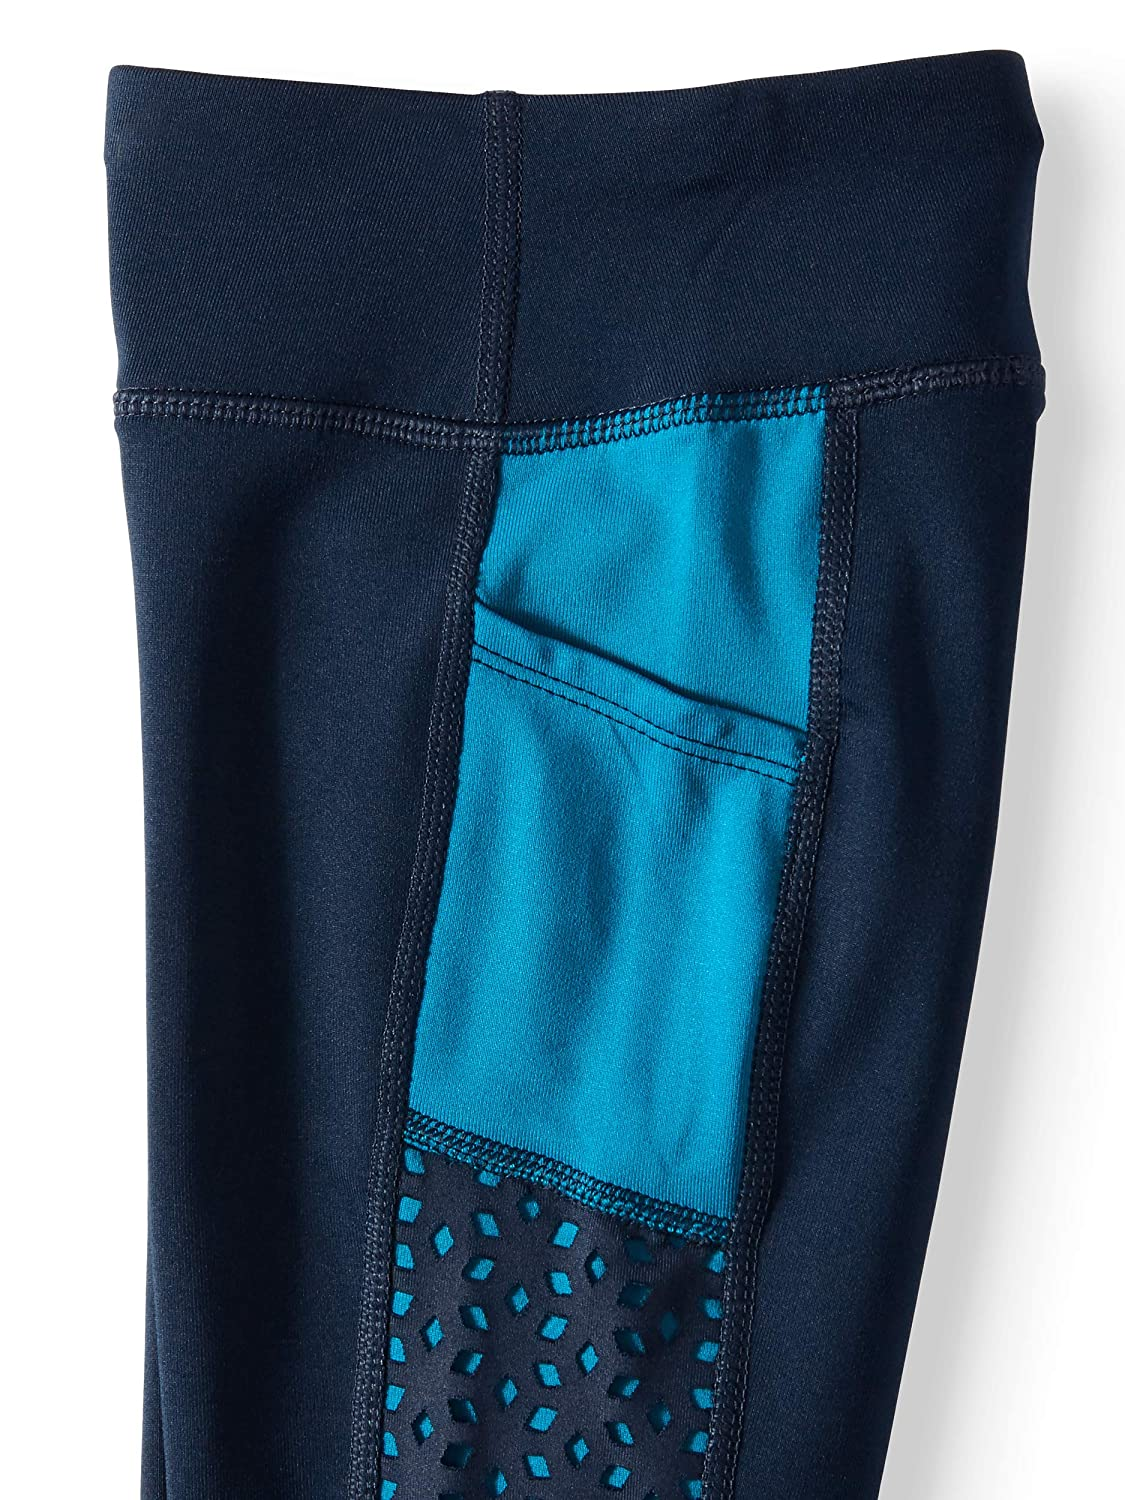 Avia Girls Performance Moisture-Wicking Leggings Blue Cove, X-Large XL, 14-16